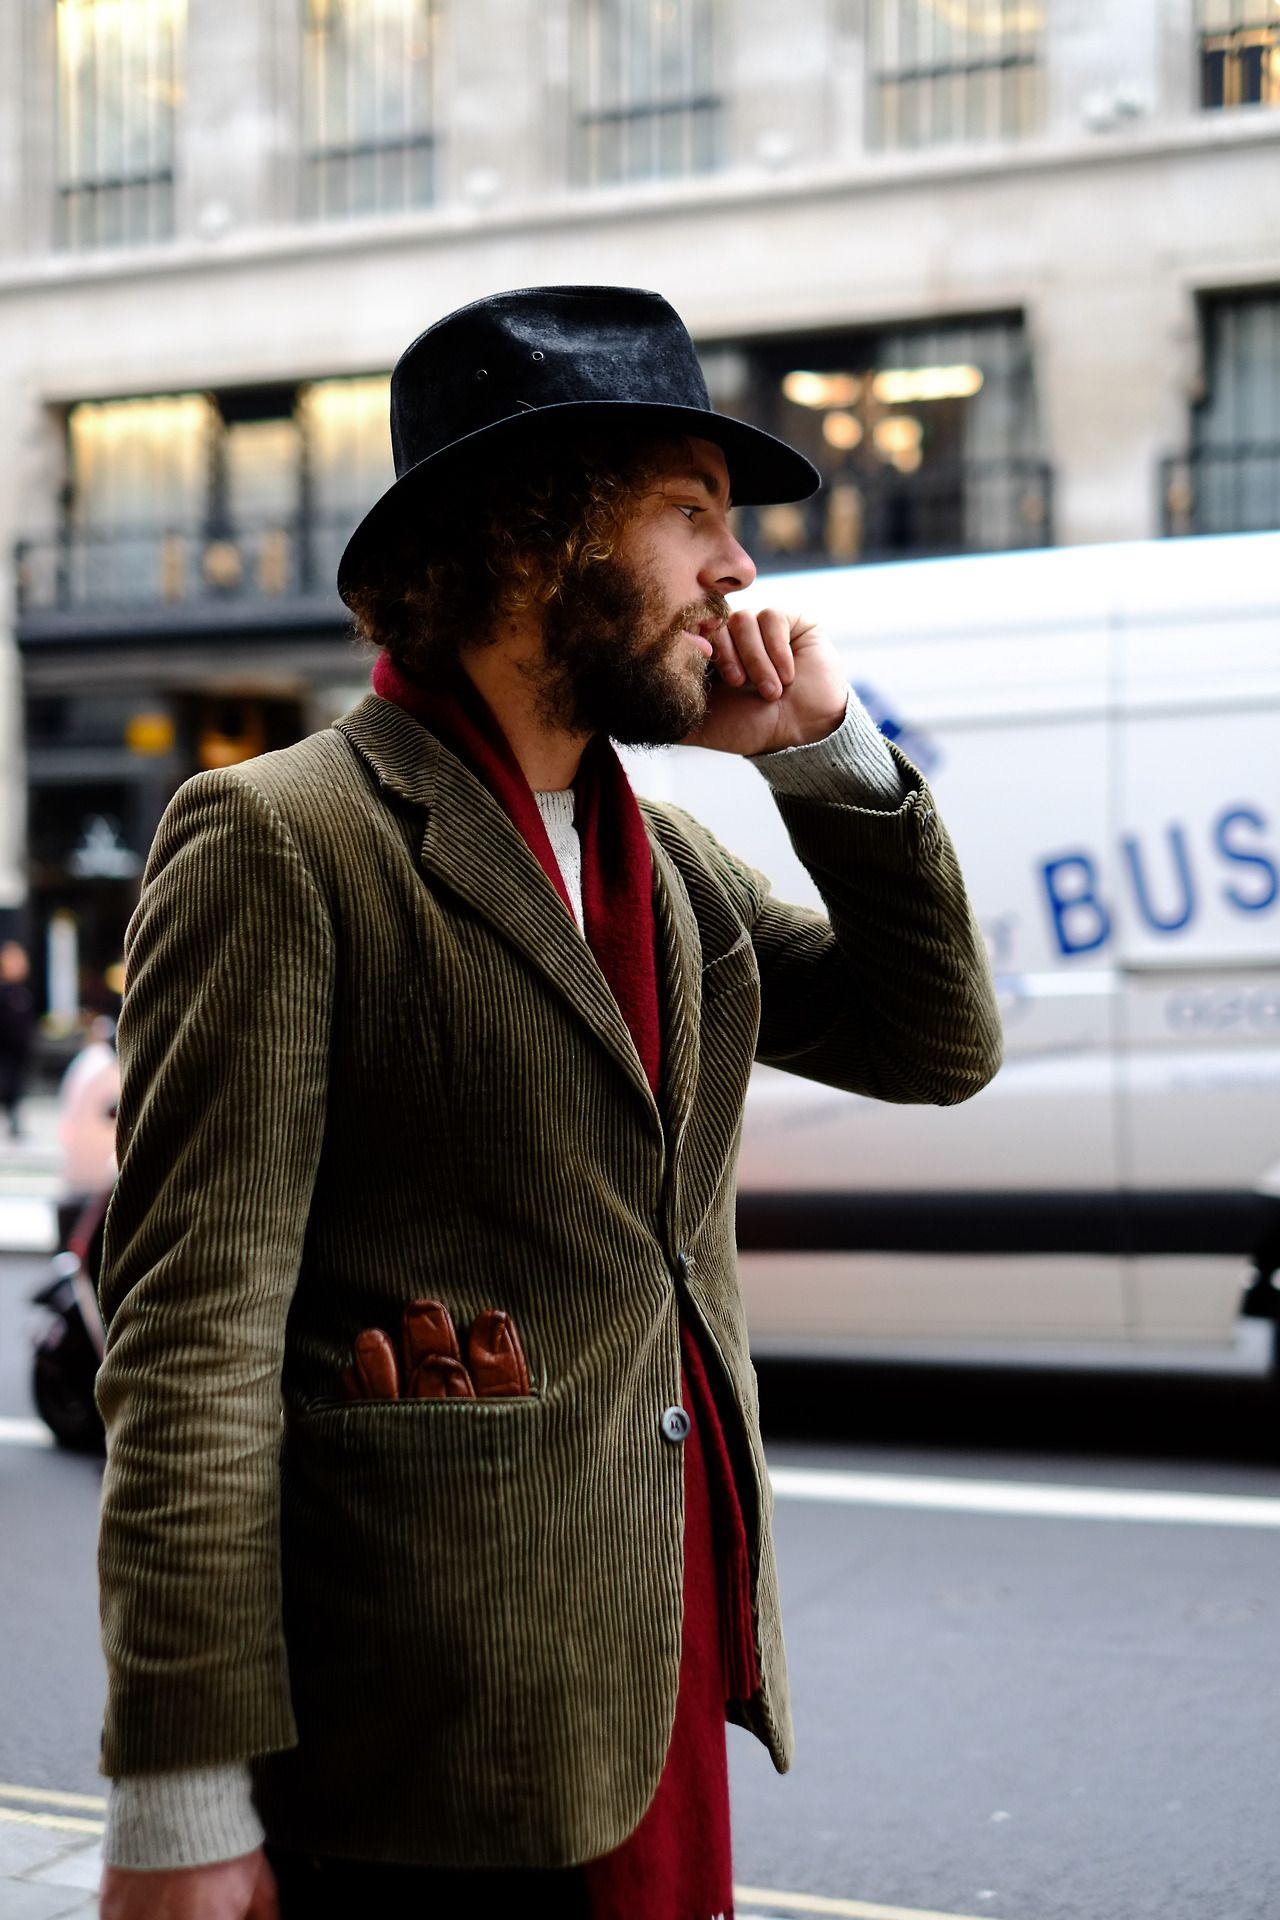 London Street Style, with a thick italian accent